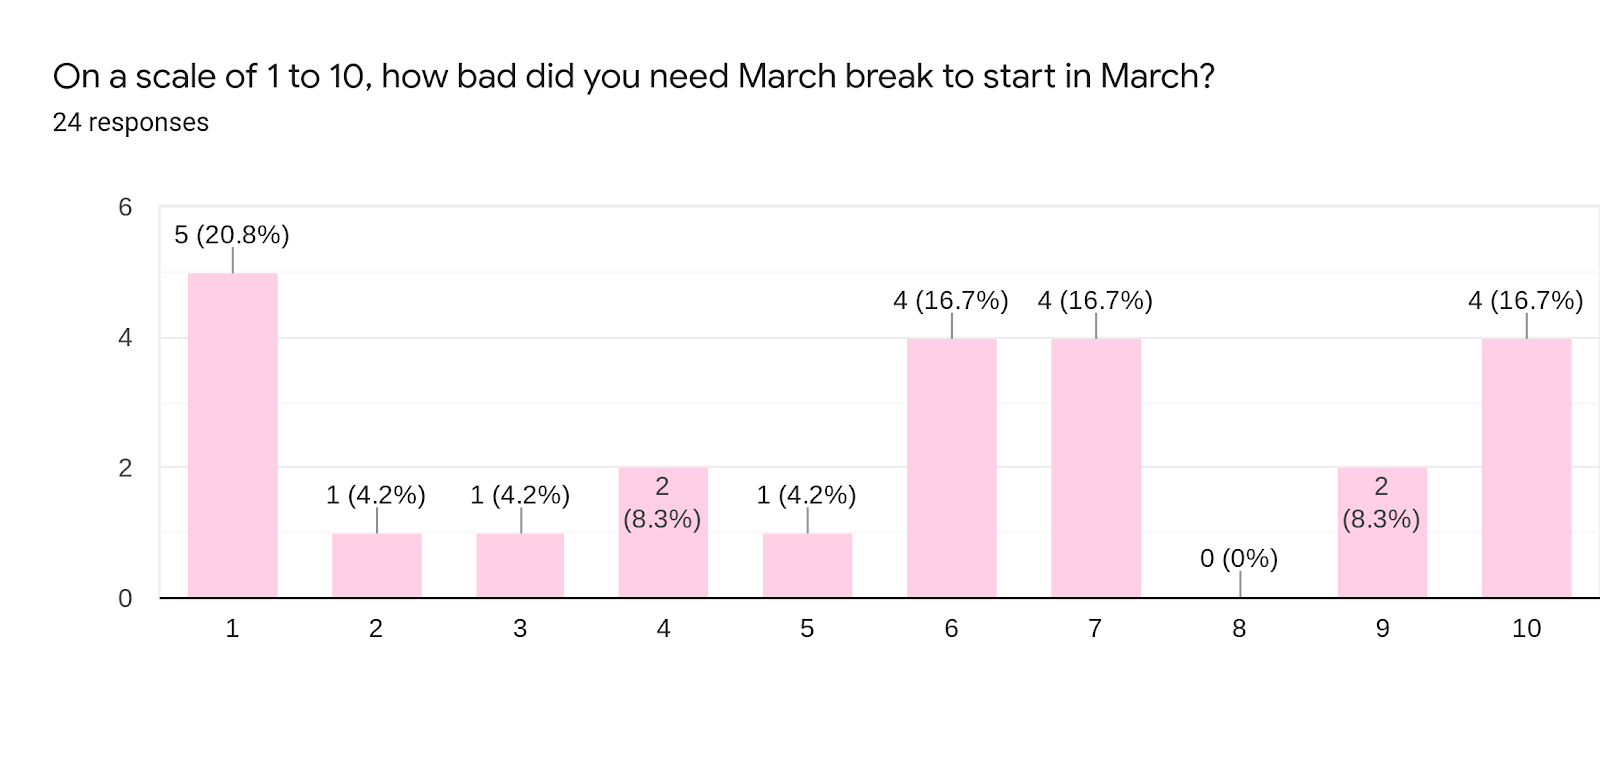 Forms response chart. Question title: On a scale of 1 to 10, how bad did you need March break to start in March?. Number of responses: 24 responses.